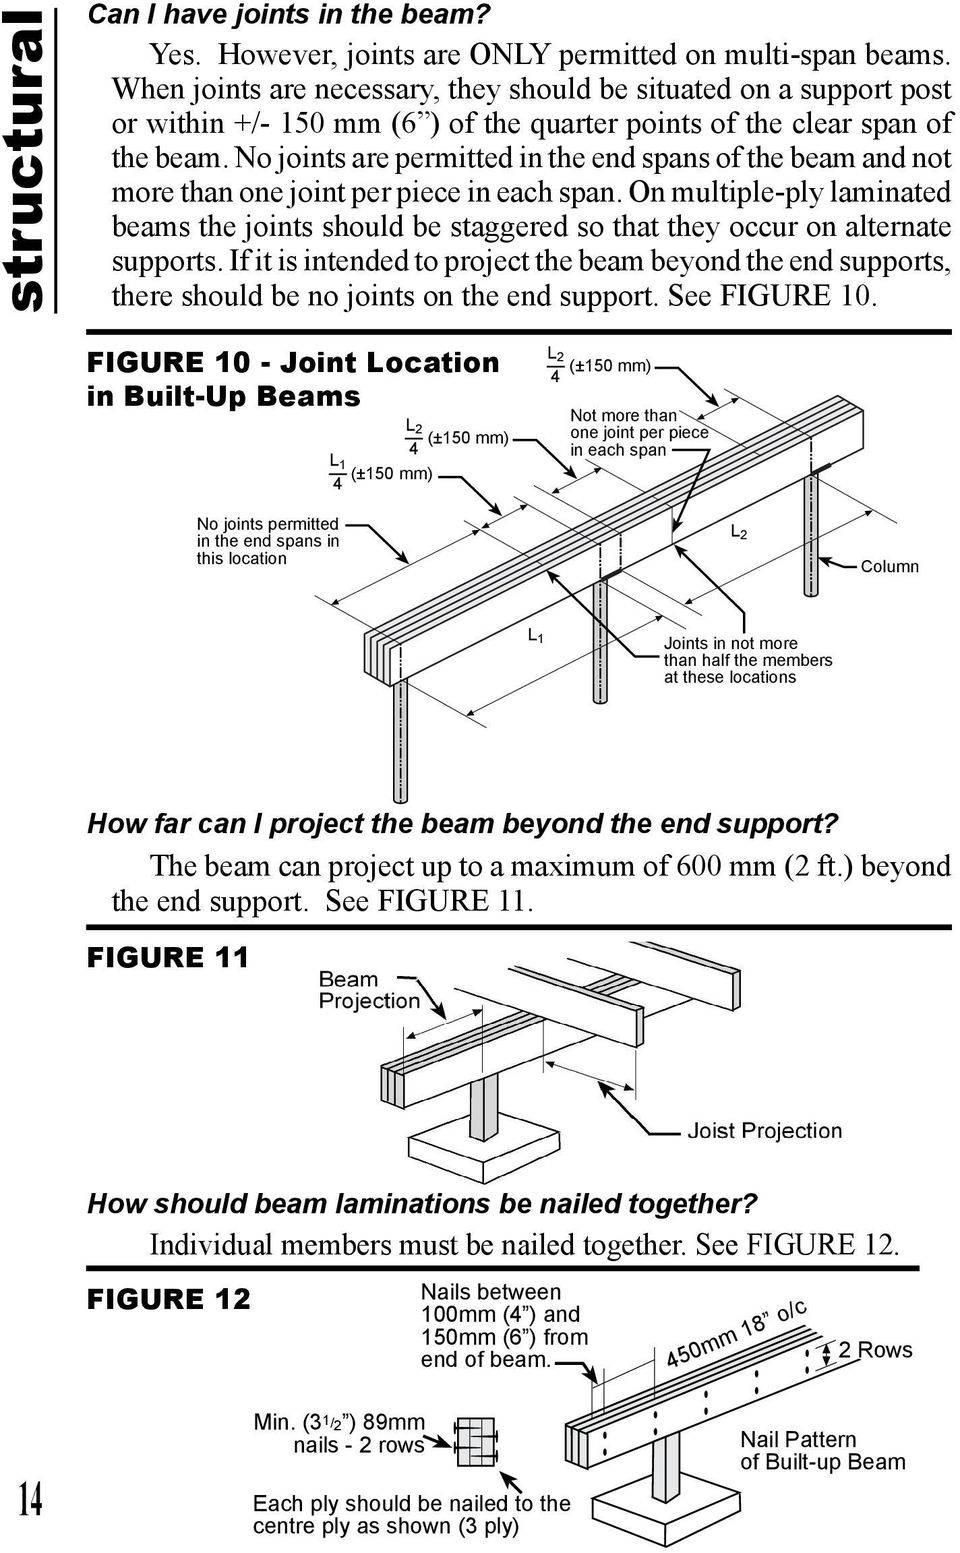 No joints are permitted in the end spans of the beam and not more than one joint per piece in each span.